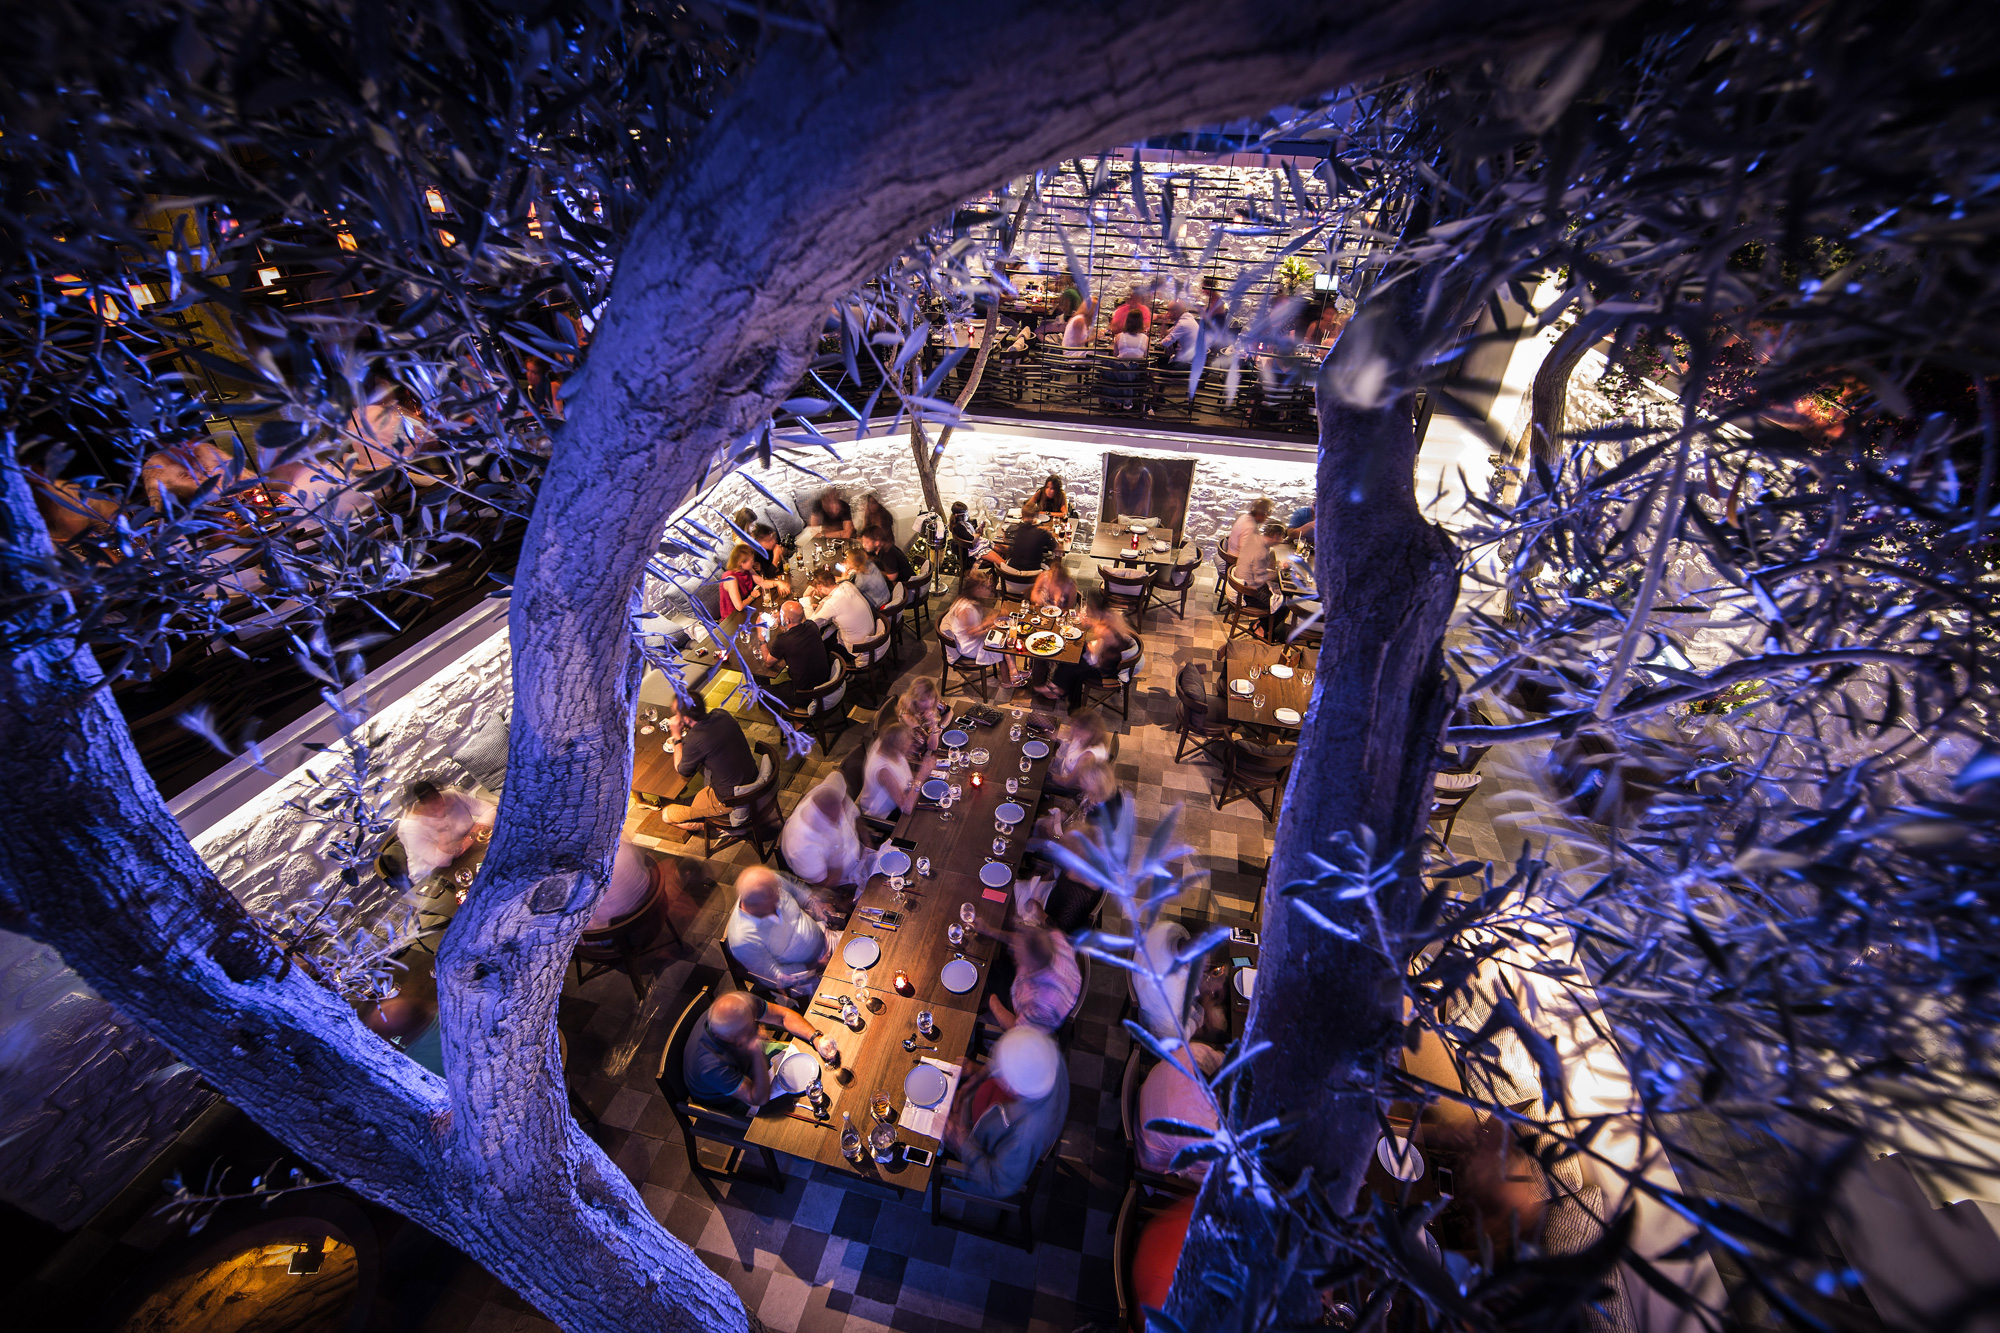 Ling Ling Returns To Mykonos With Culinary Excellence And Playful Decadence